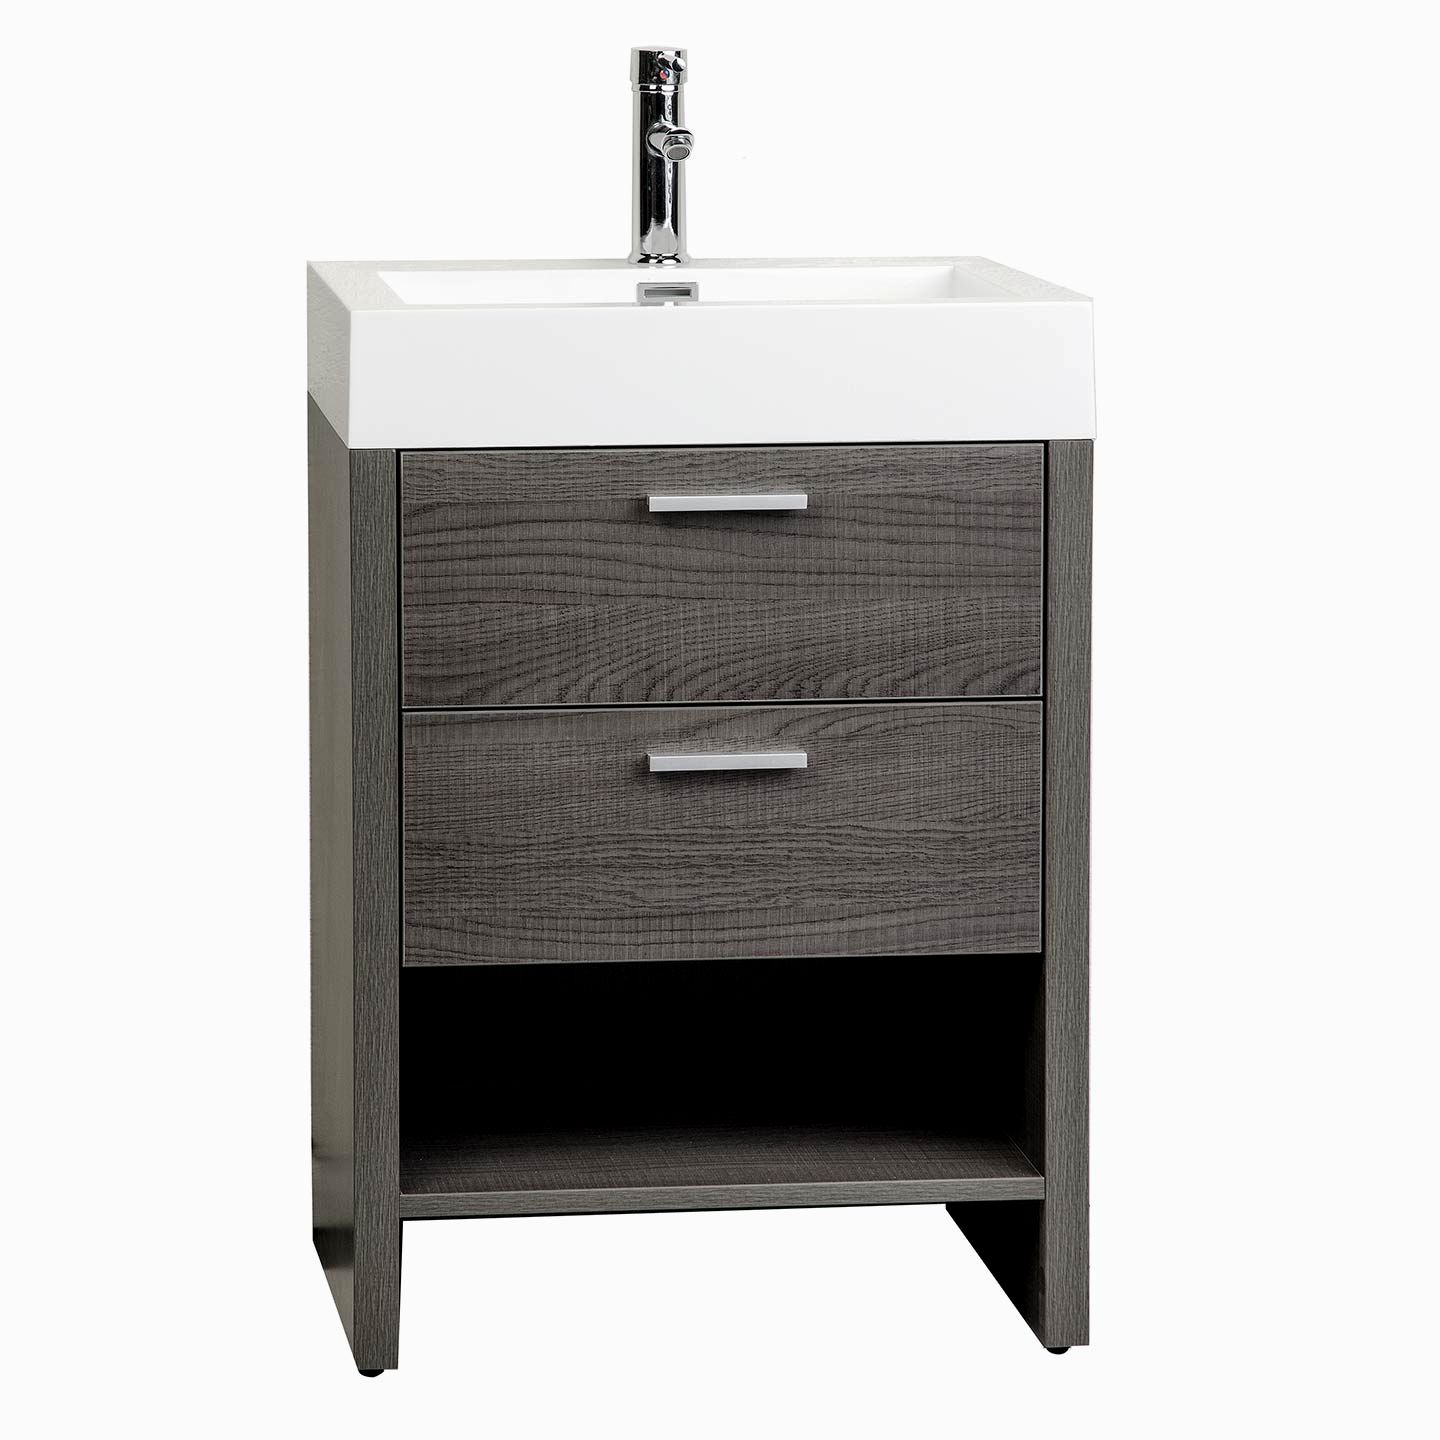 luxury bathroom vanity 36 inch concept-Top Bathroom Vanity 36 Inch Gallery